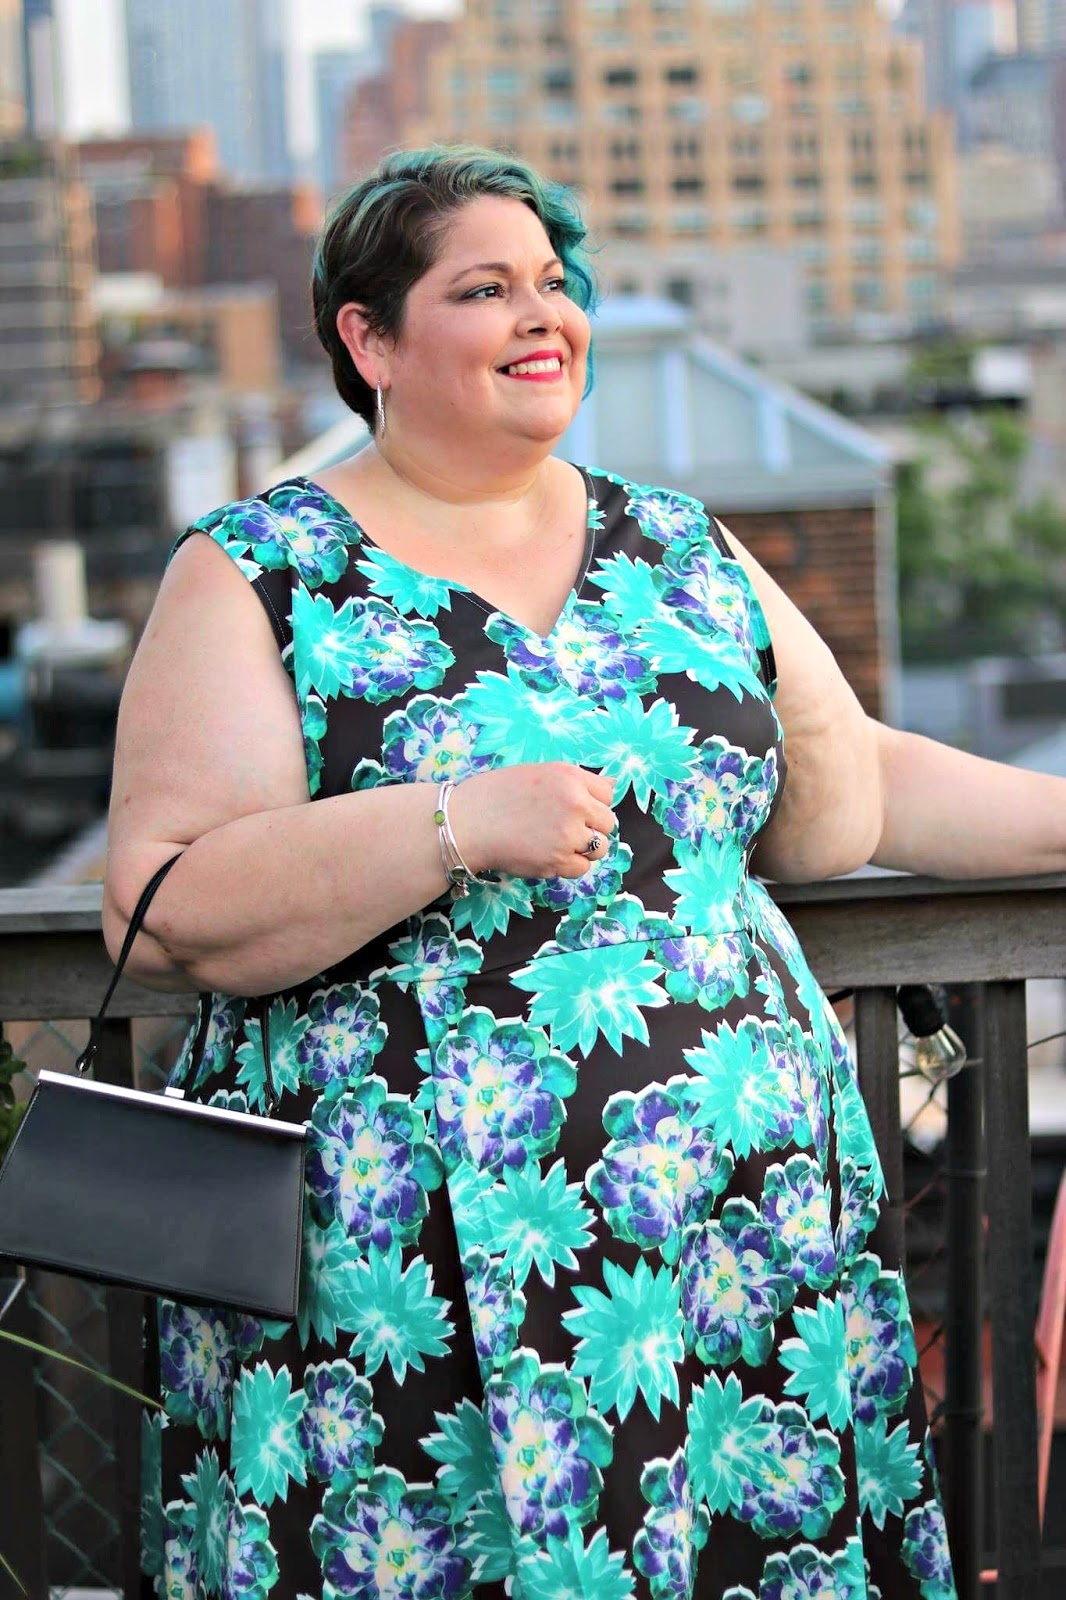 what does full figured mean for a woman